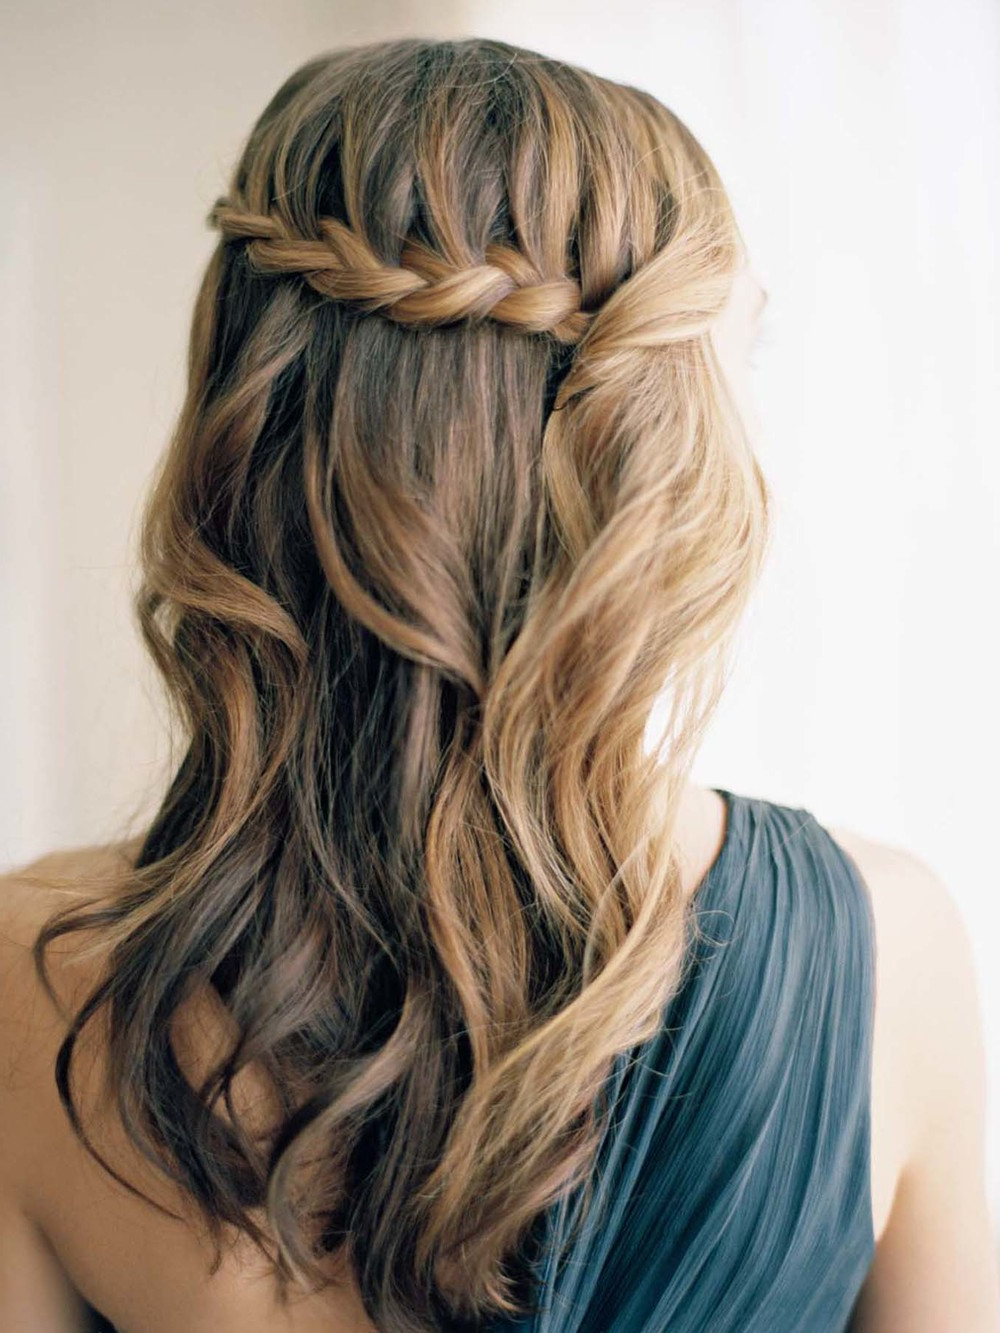 Waterfall Braid Hair Styles Within Well Known Diagonal Waterfall Braid In Half Up Bridal Hairstyles (View 17 of 20)